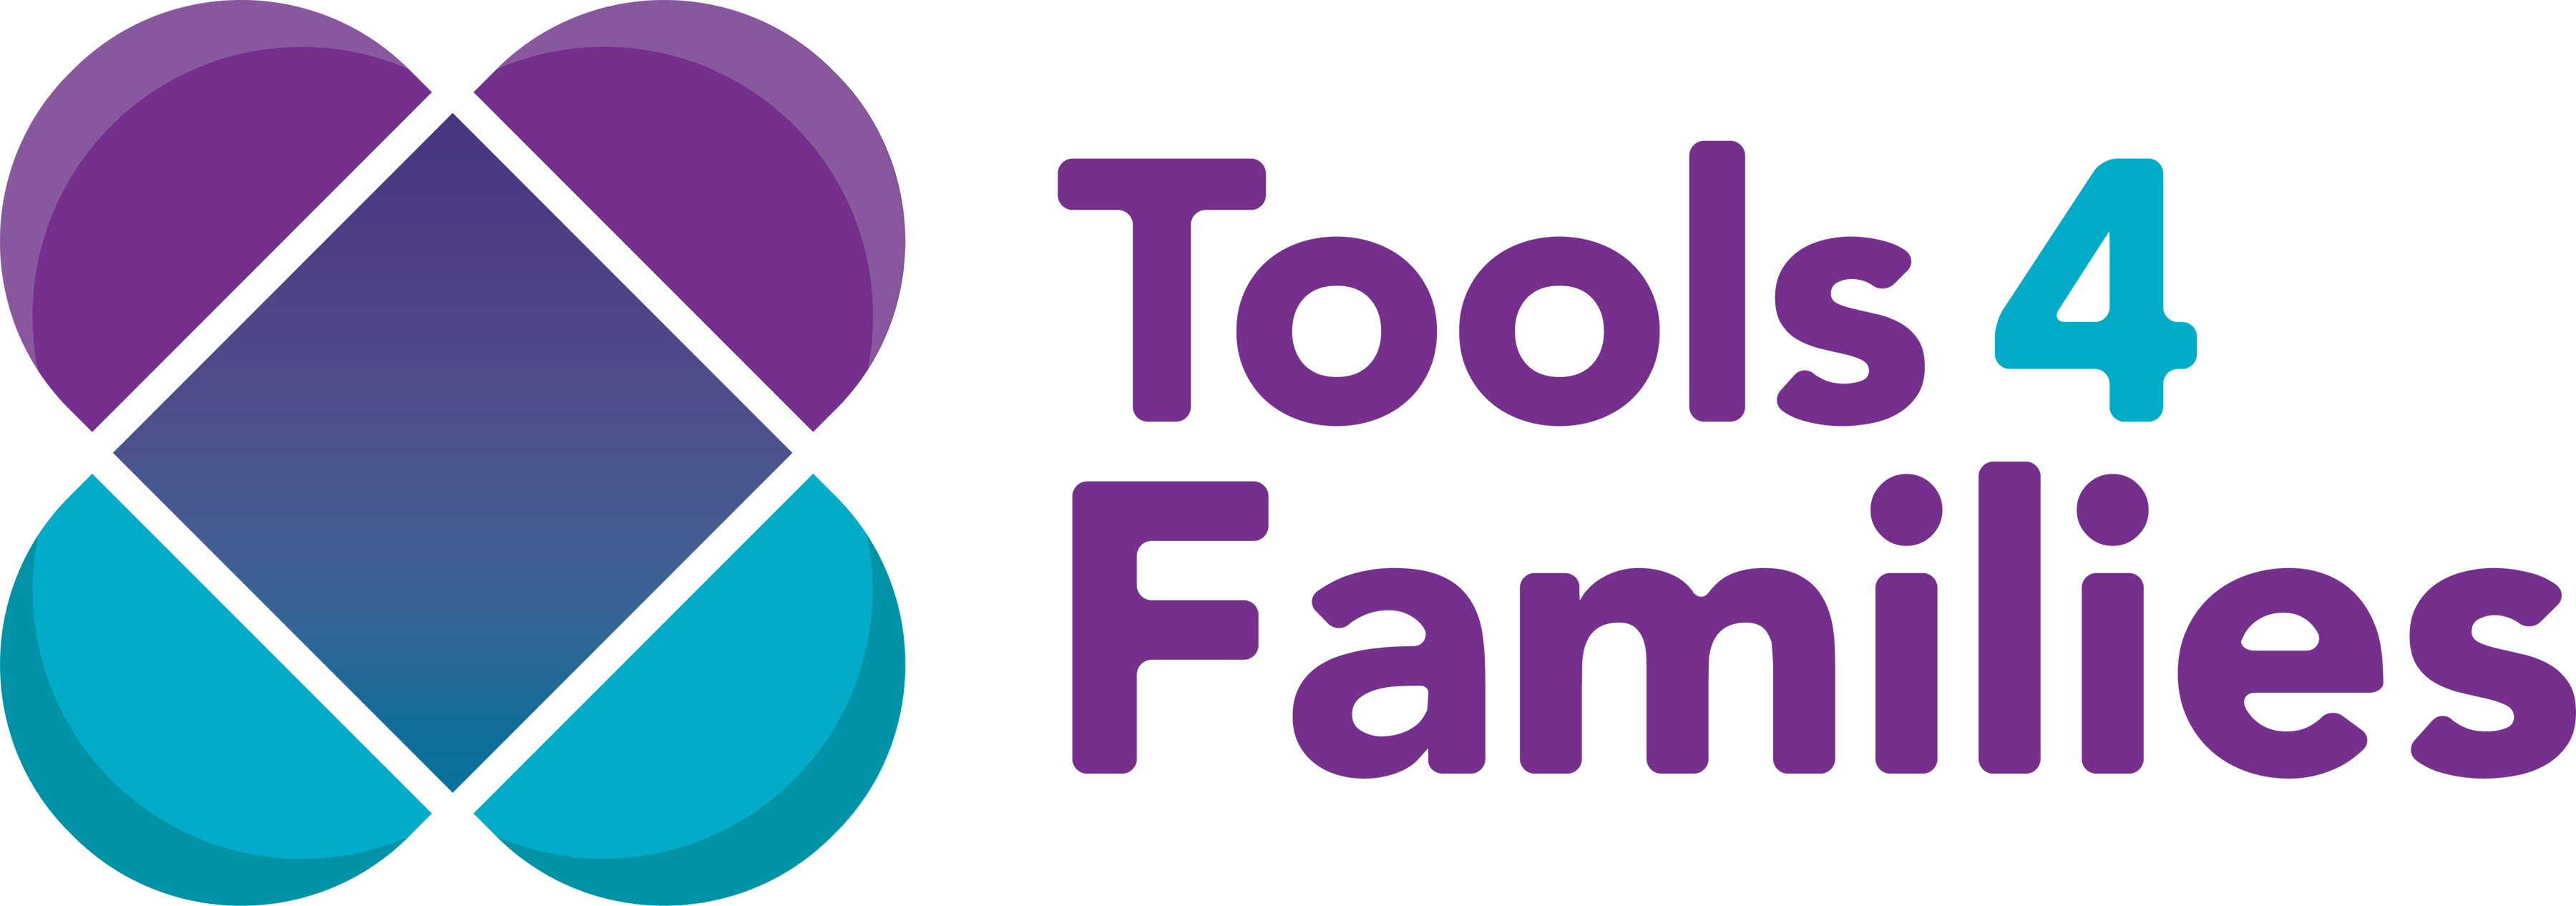 Tools4Families